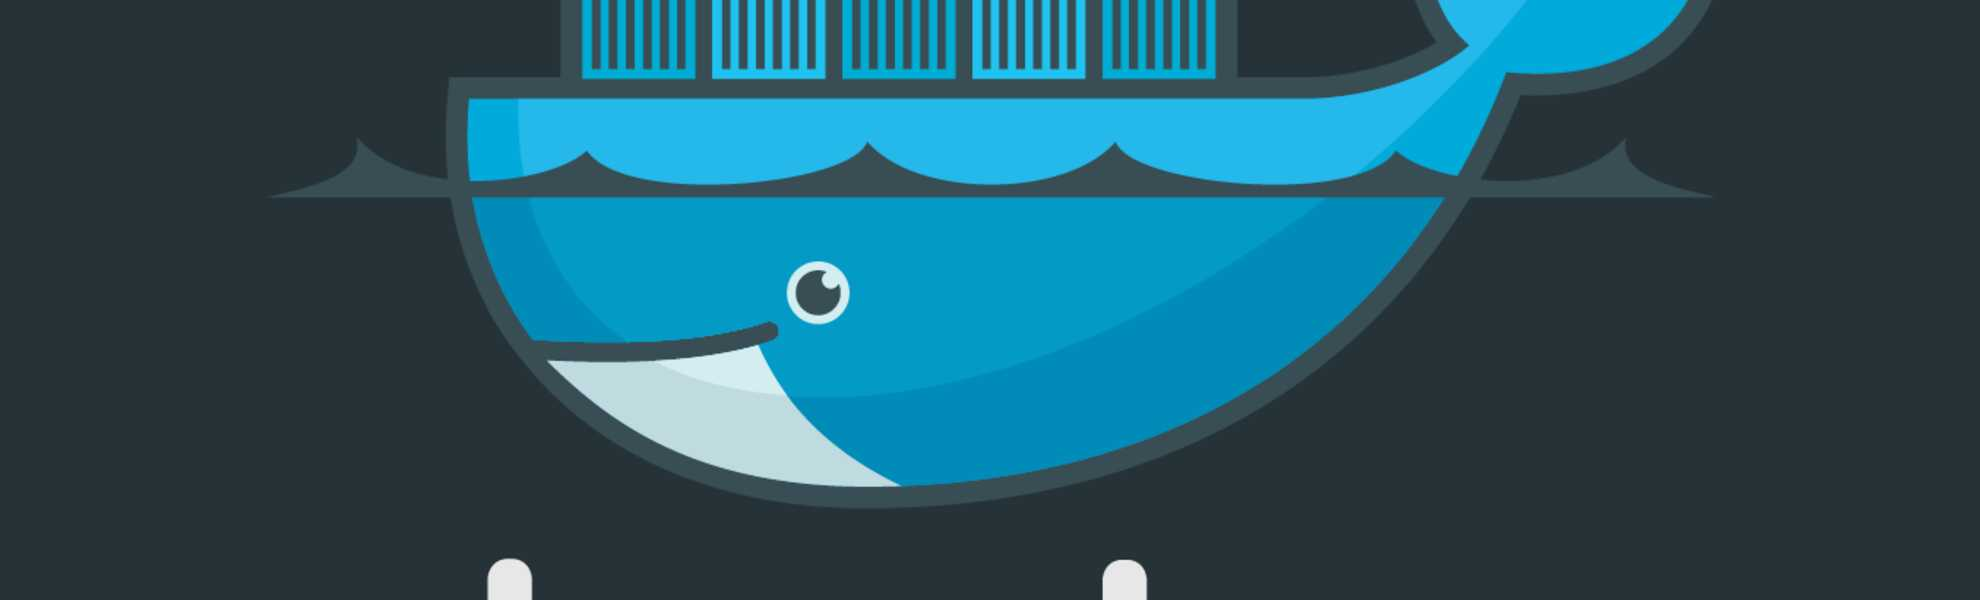 Changing Docker hostnames—with namespaces! | Evolving Web Blog